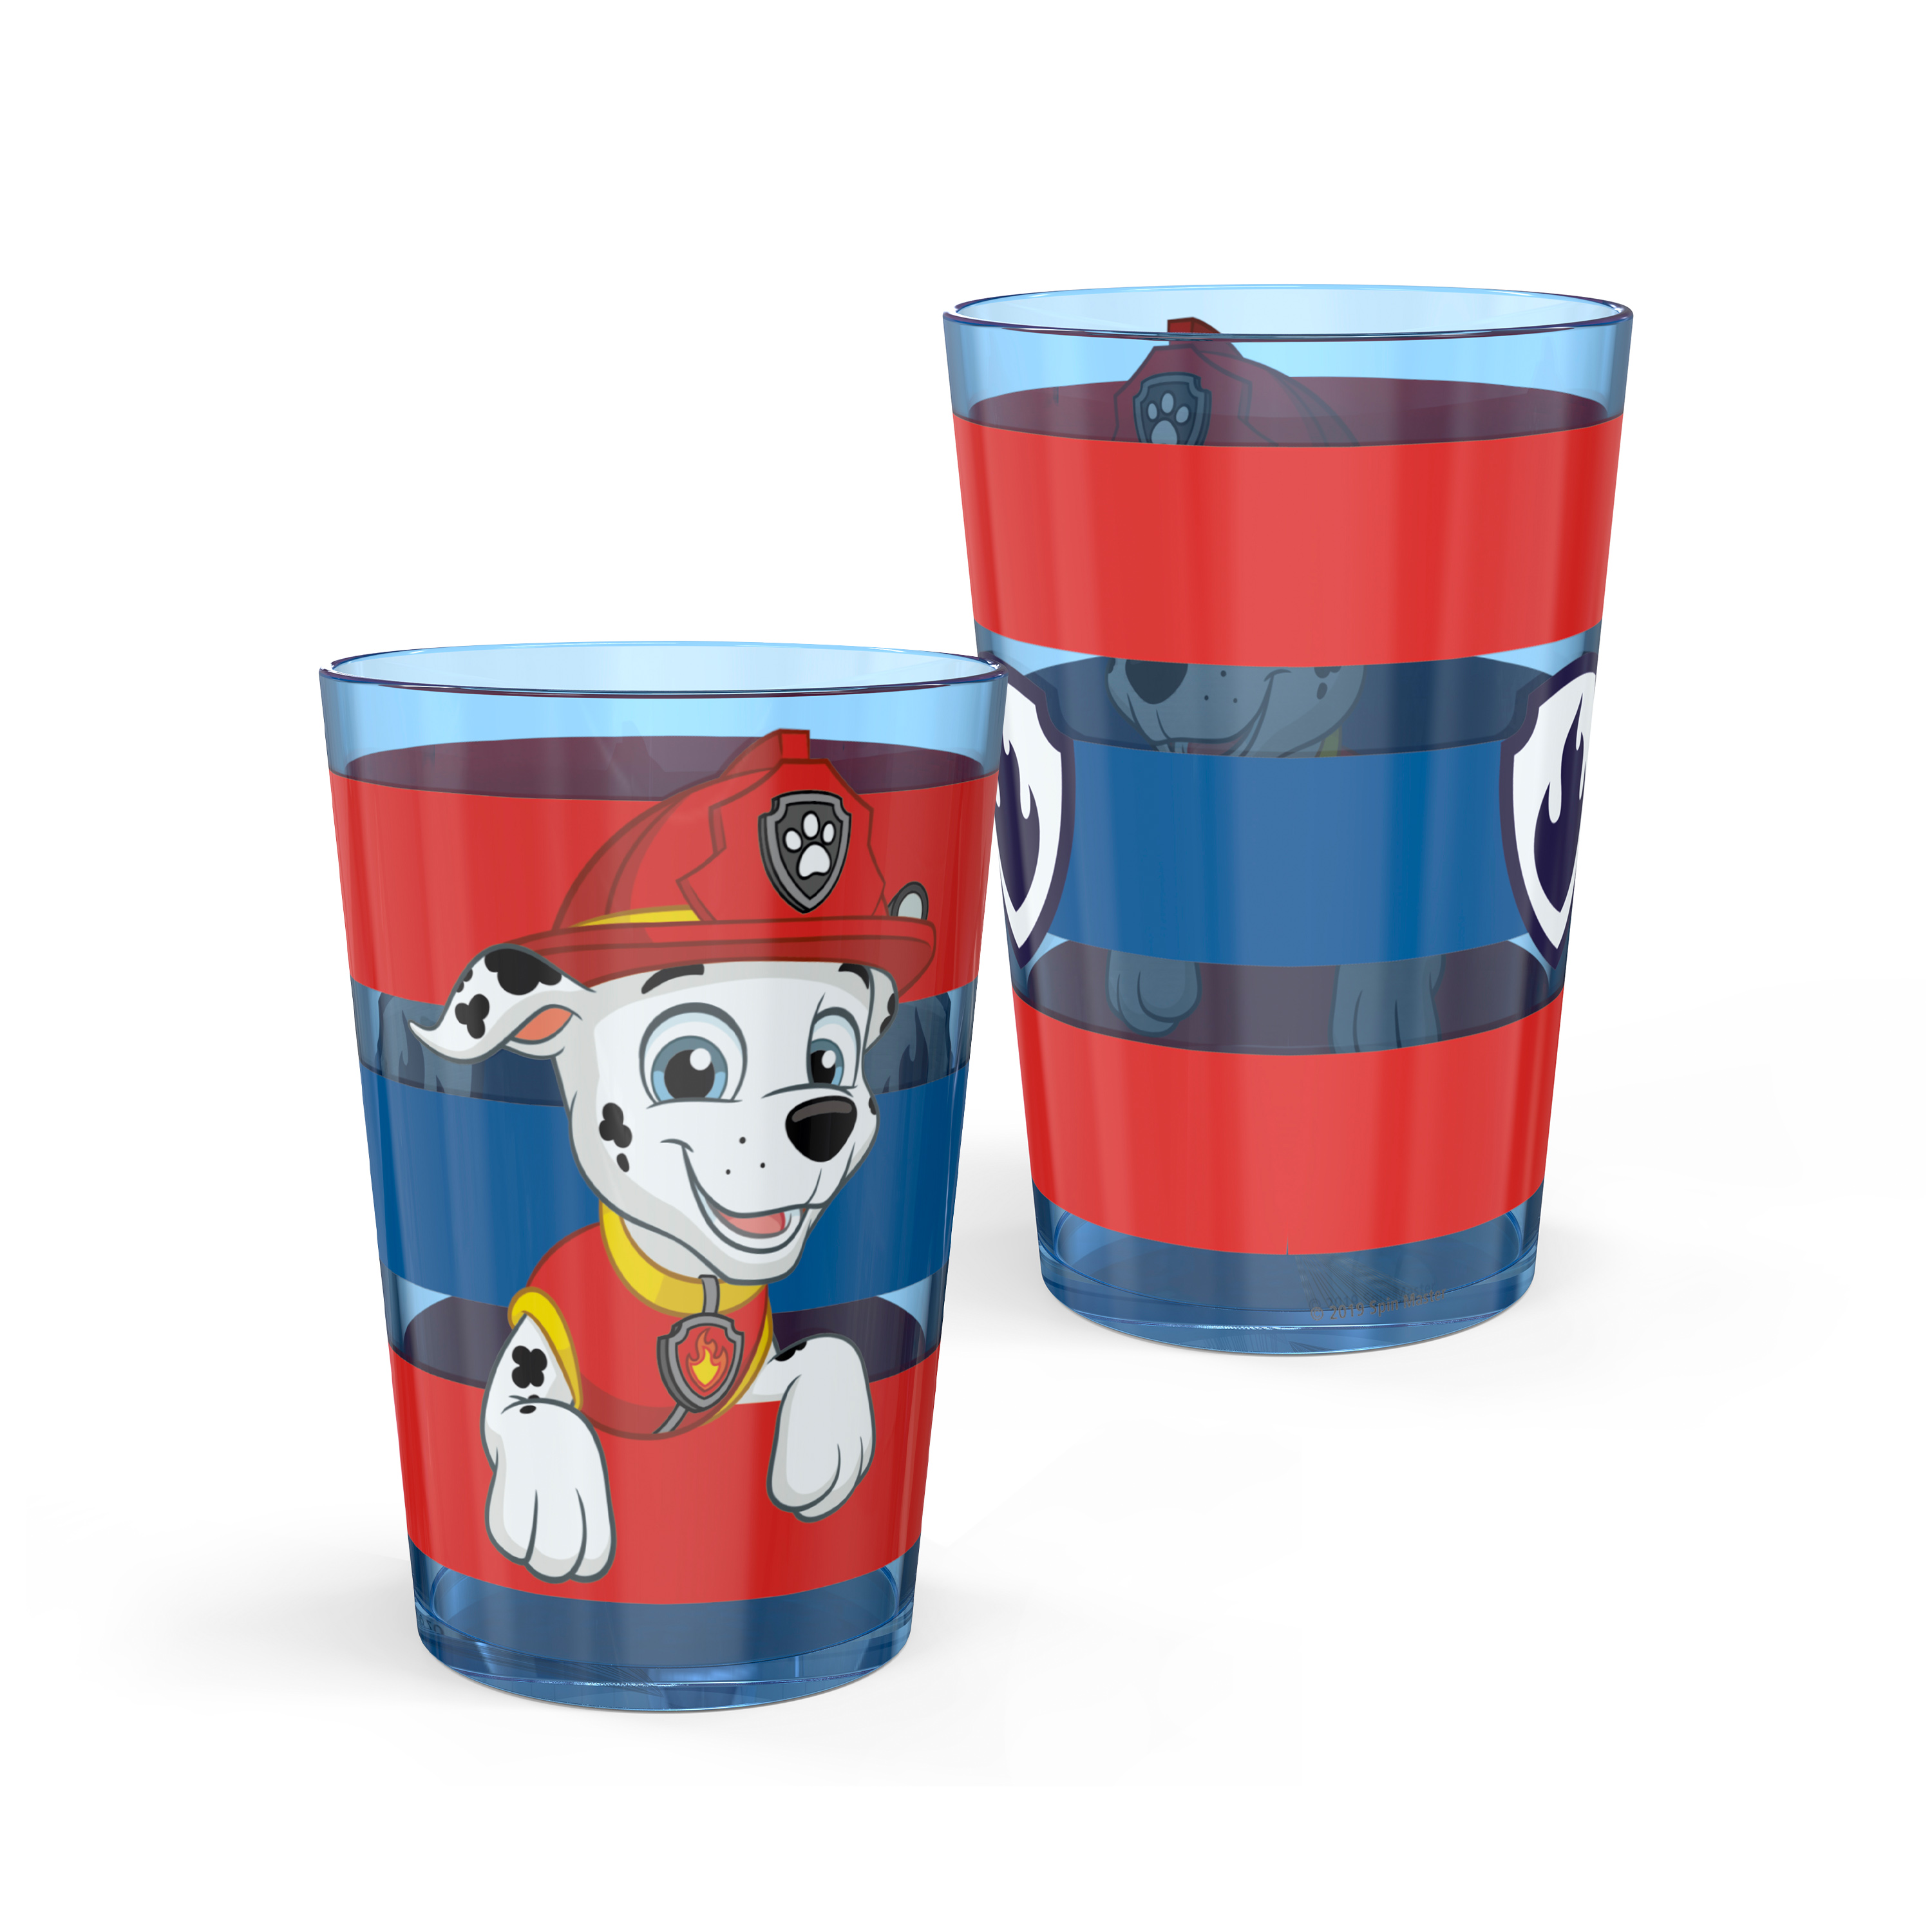 Paw Patrol 14.5 ounce Tumbler, Chase, Skye and Friends, 4-piece set slideshow image 8